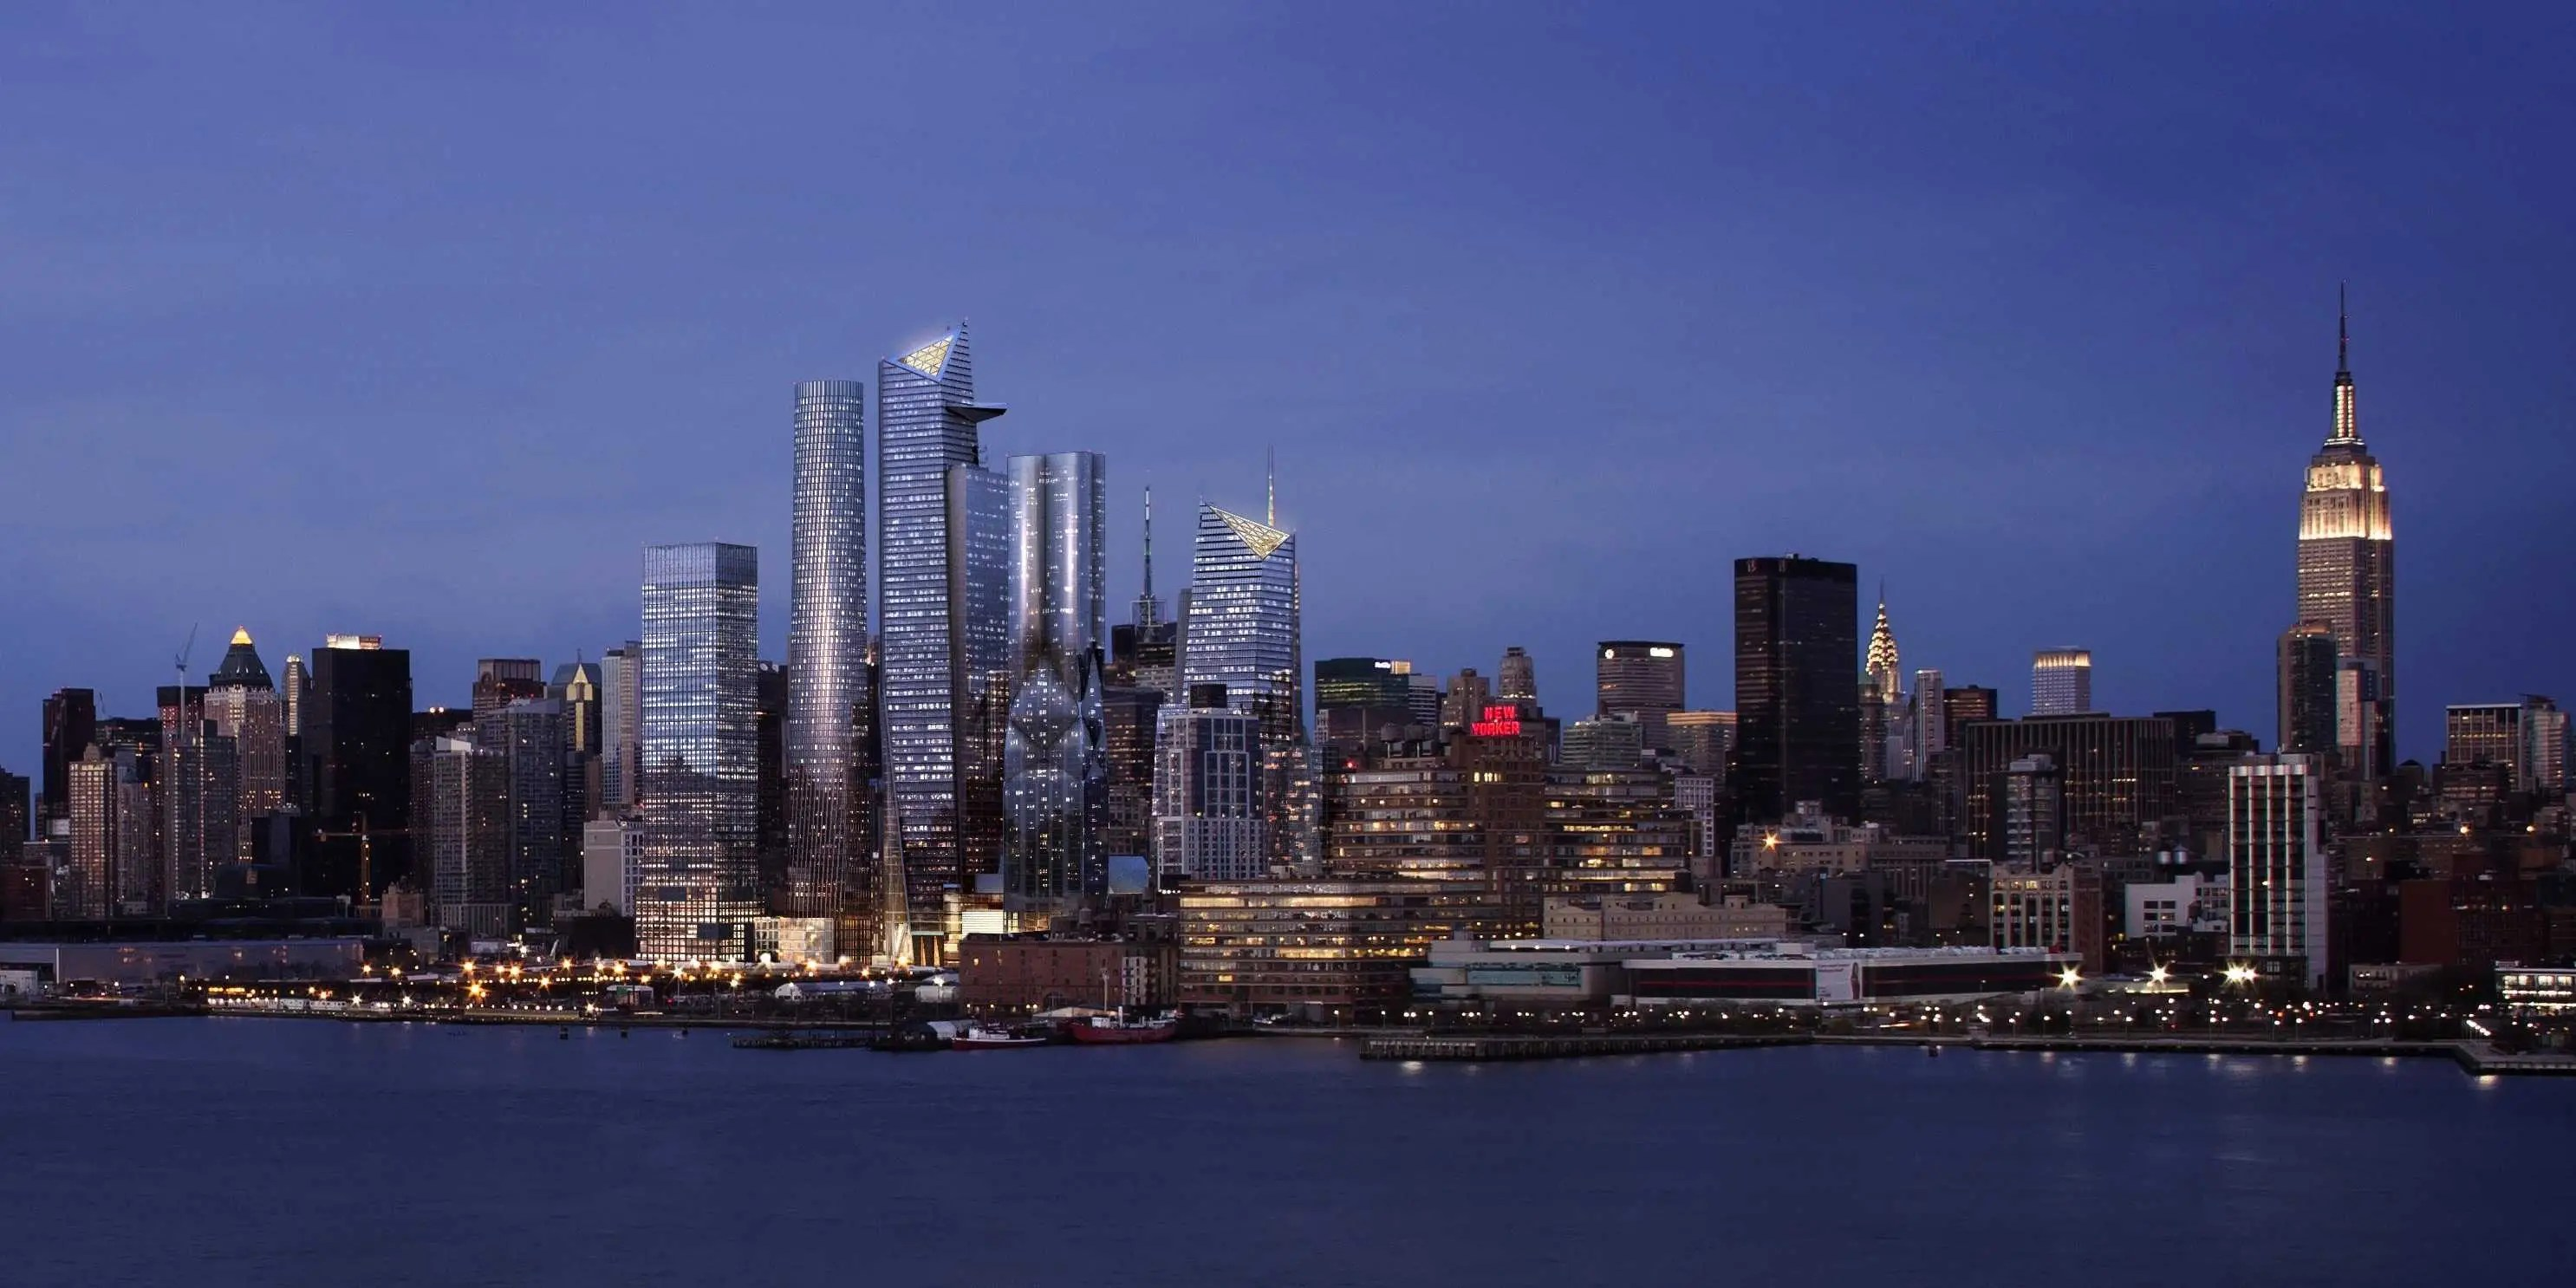 Evening View Of Hudson Yards, From The Hudson River (c) Related Oxford